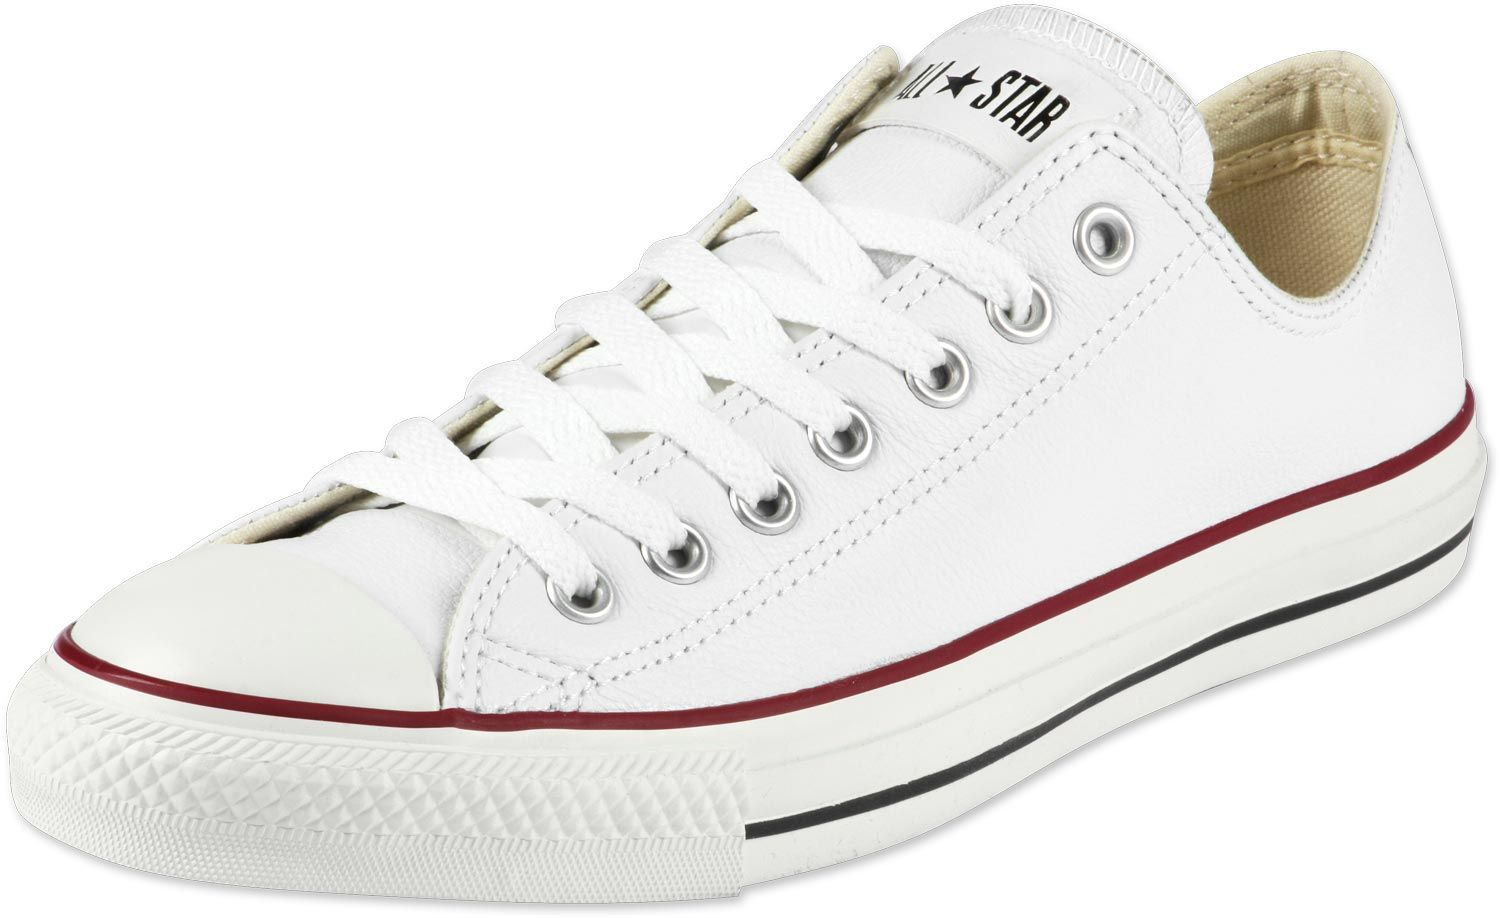 converse all star ox leather schuhe weiss 1520 | SLE Music